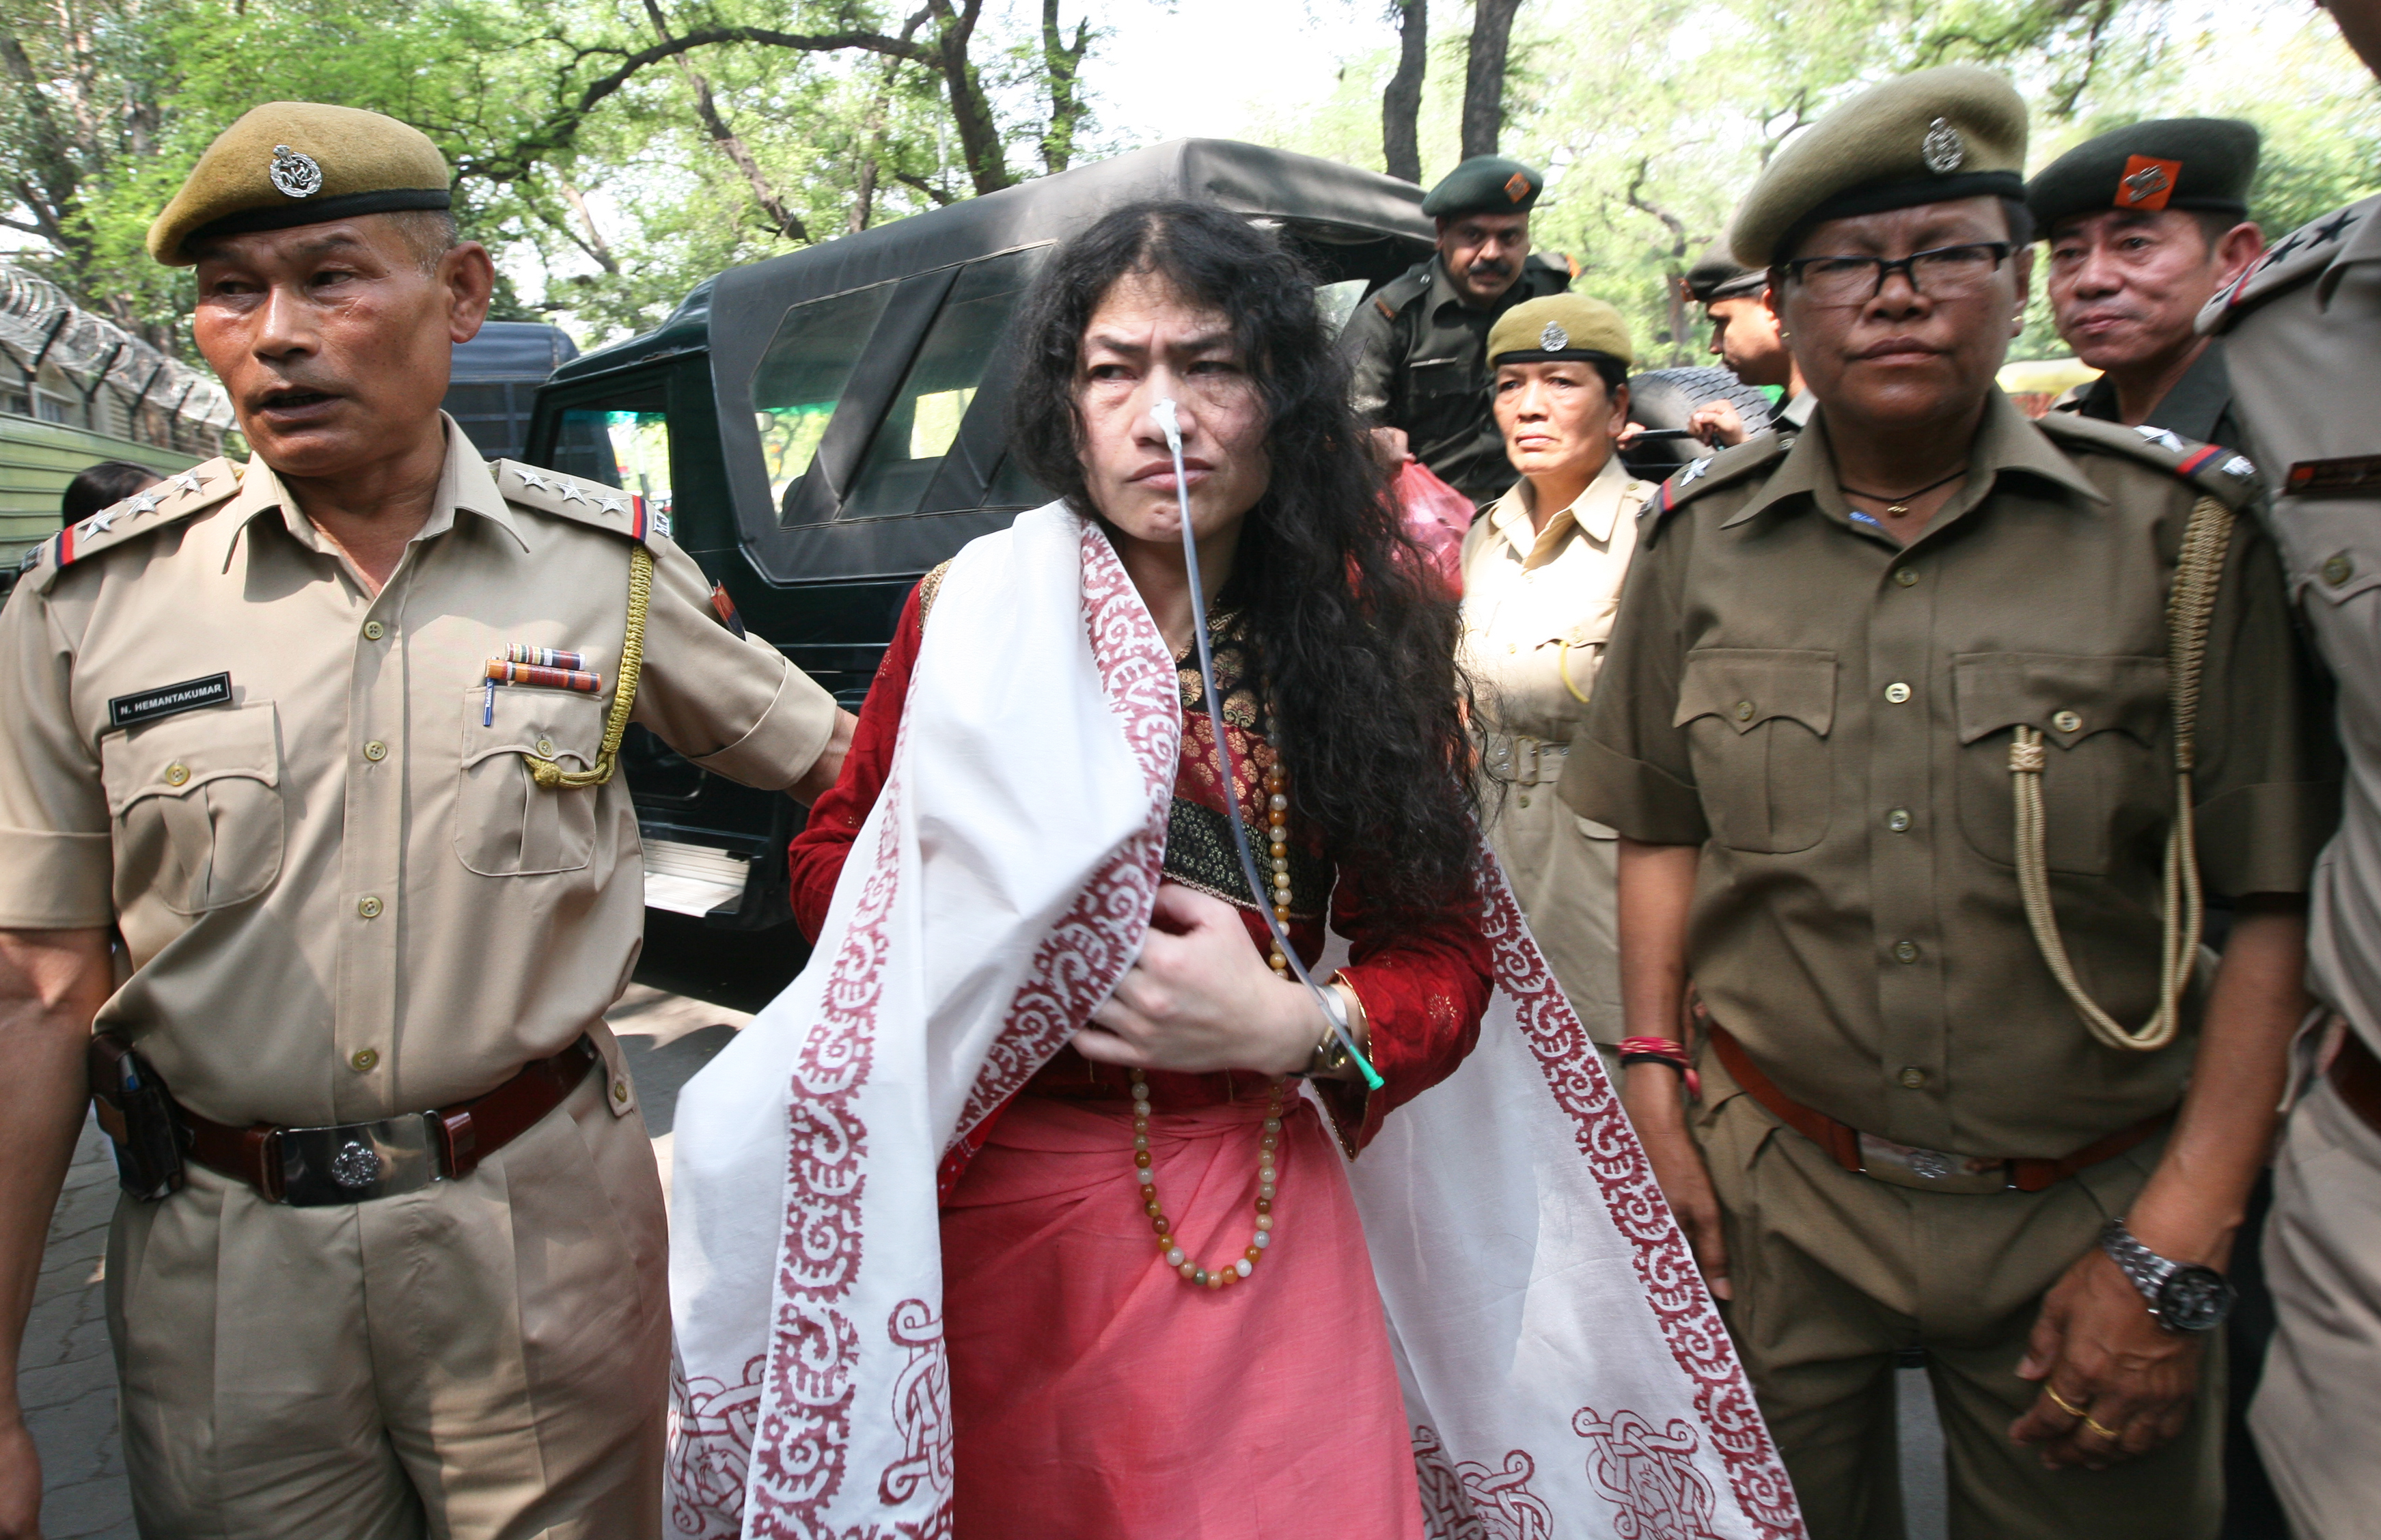 Human rights activist Irom Sharmila arrives at Patiala court for hearing a case of attempted suicide during her fast-unto-death at Jantar Mantar here in 2006 on May 28, 2014 in New Delhi, India.